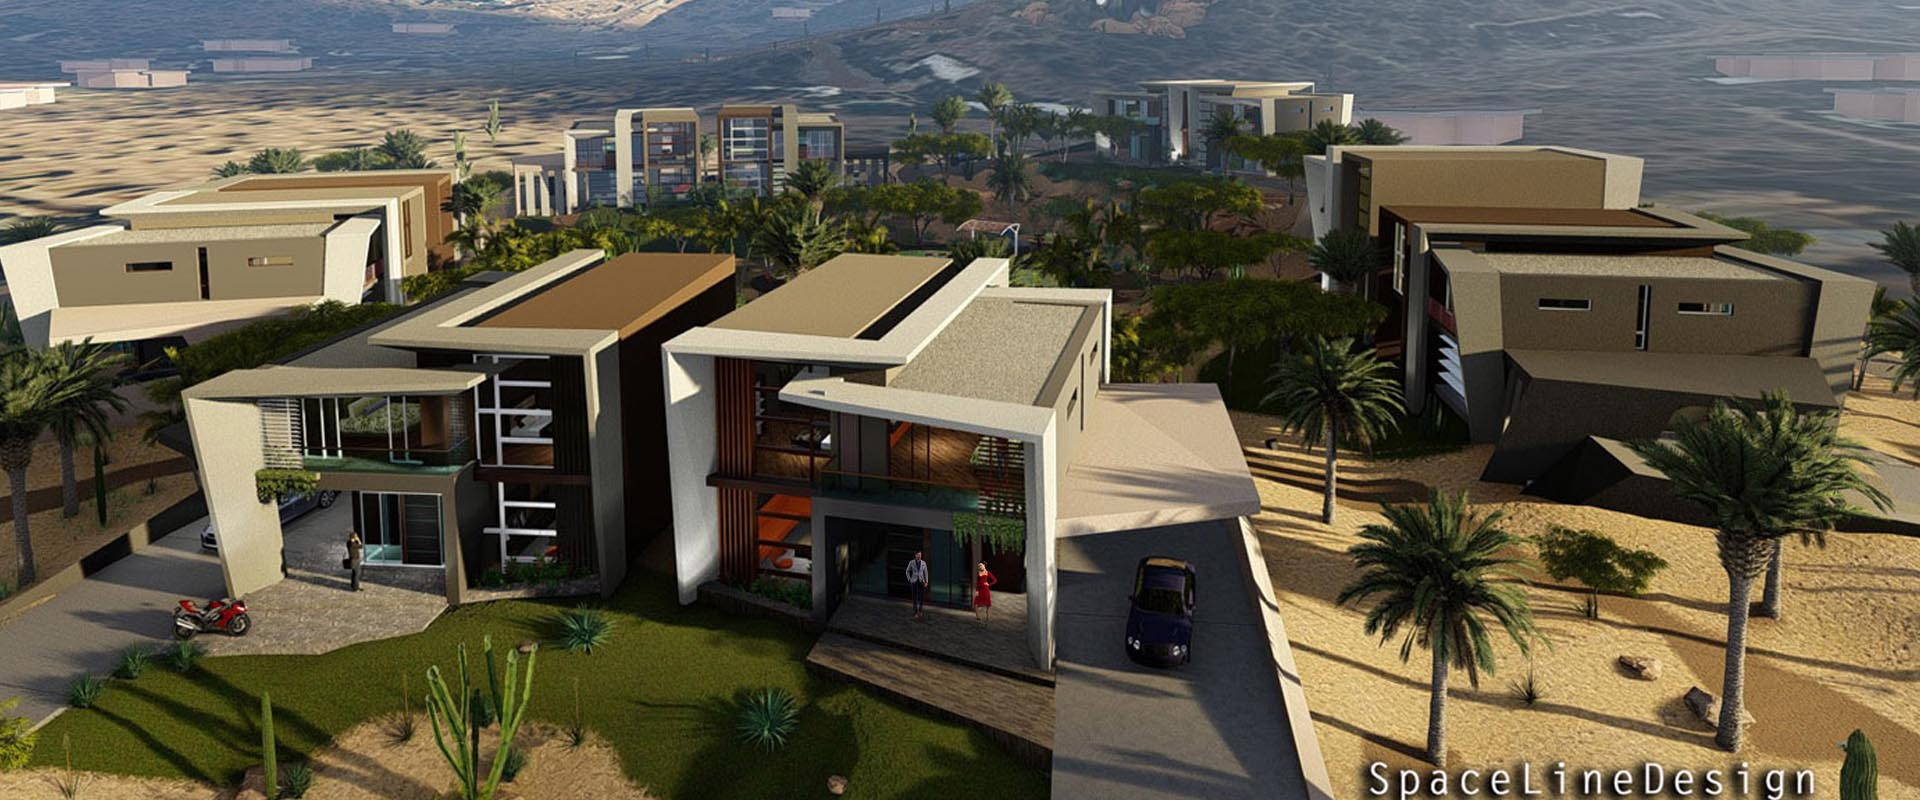 Phoenix_Villa_Community_10_unit_Residential_SpaceLineDesign.jpg